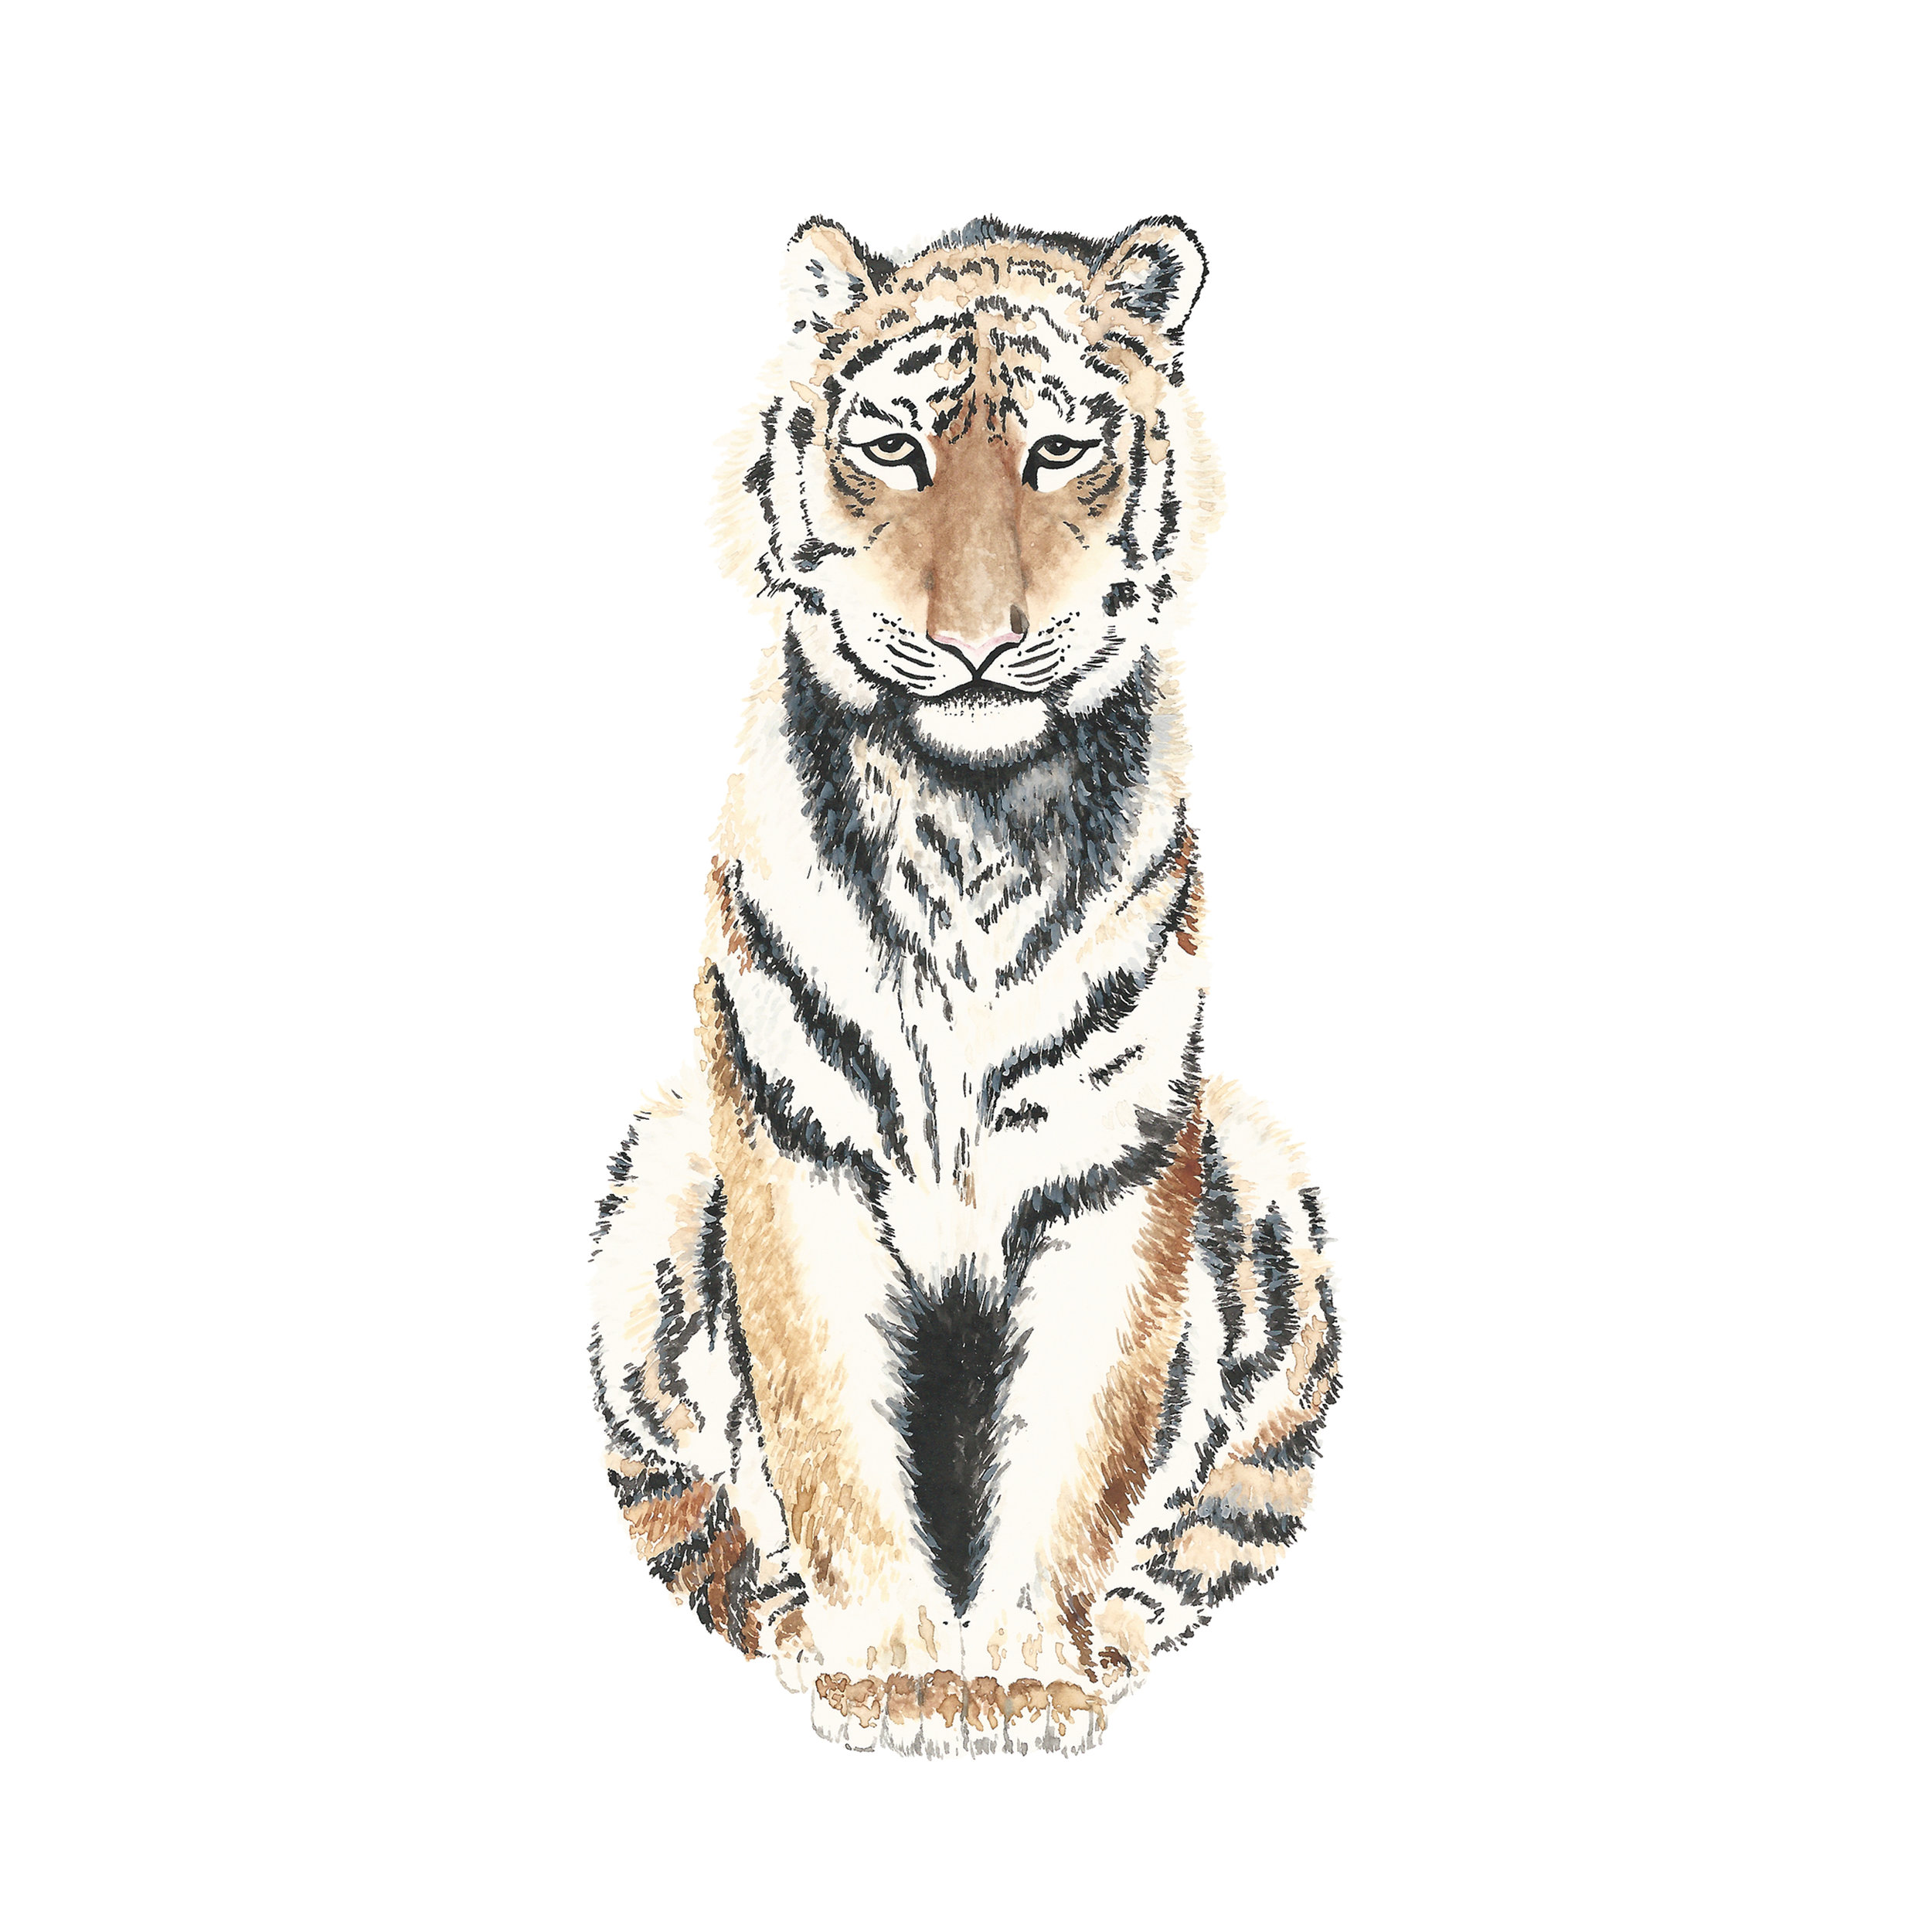 Tiger - Watercolor Print — Louise Dean Design LLC